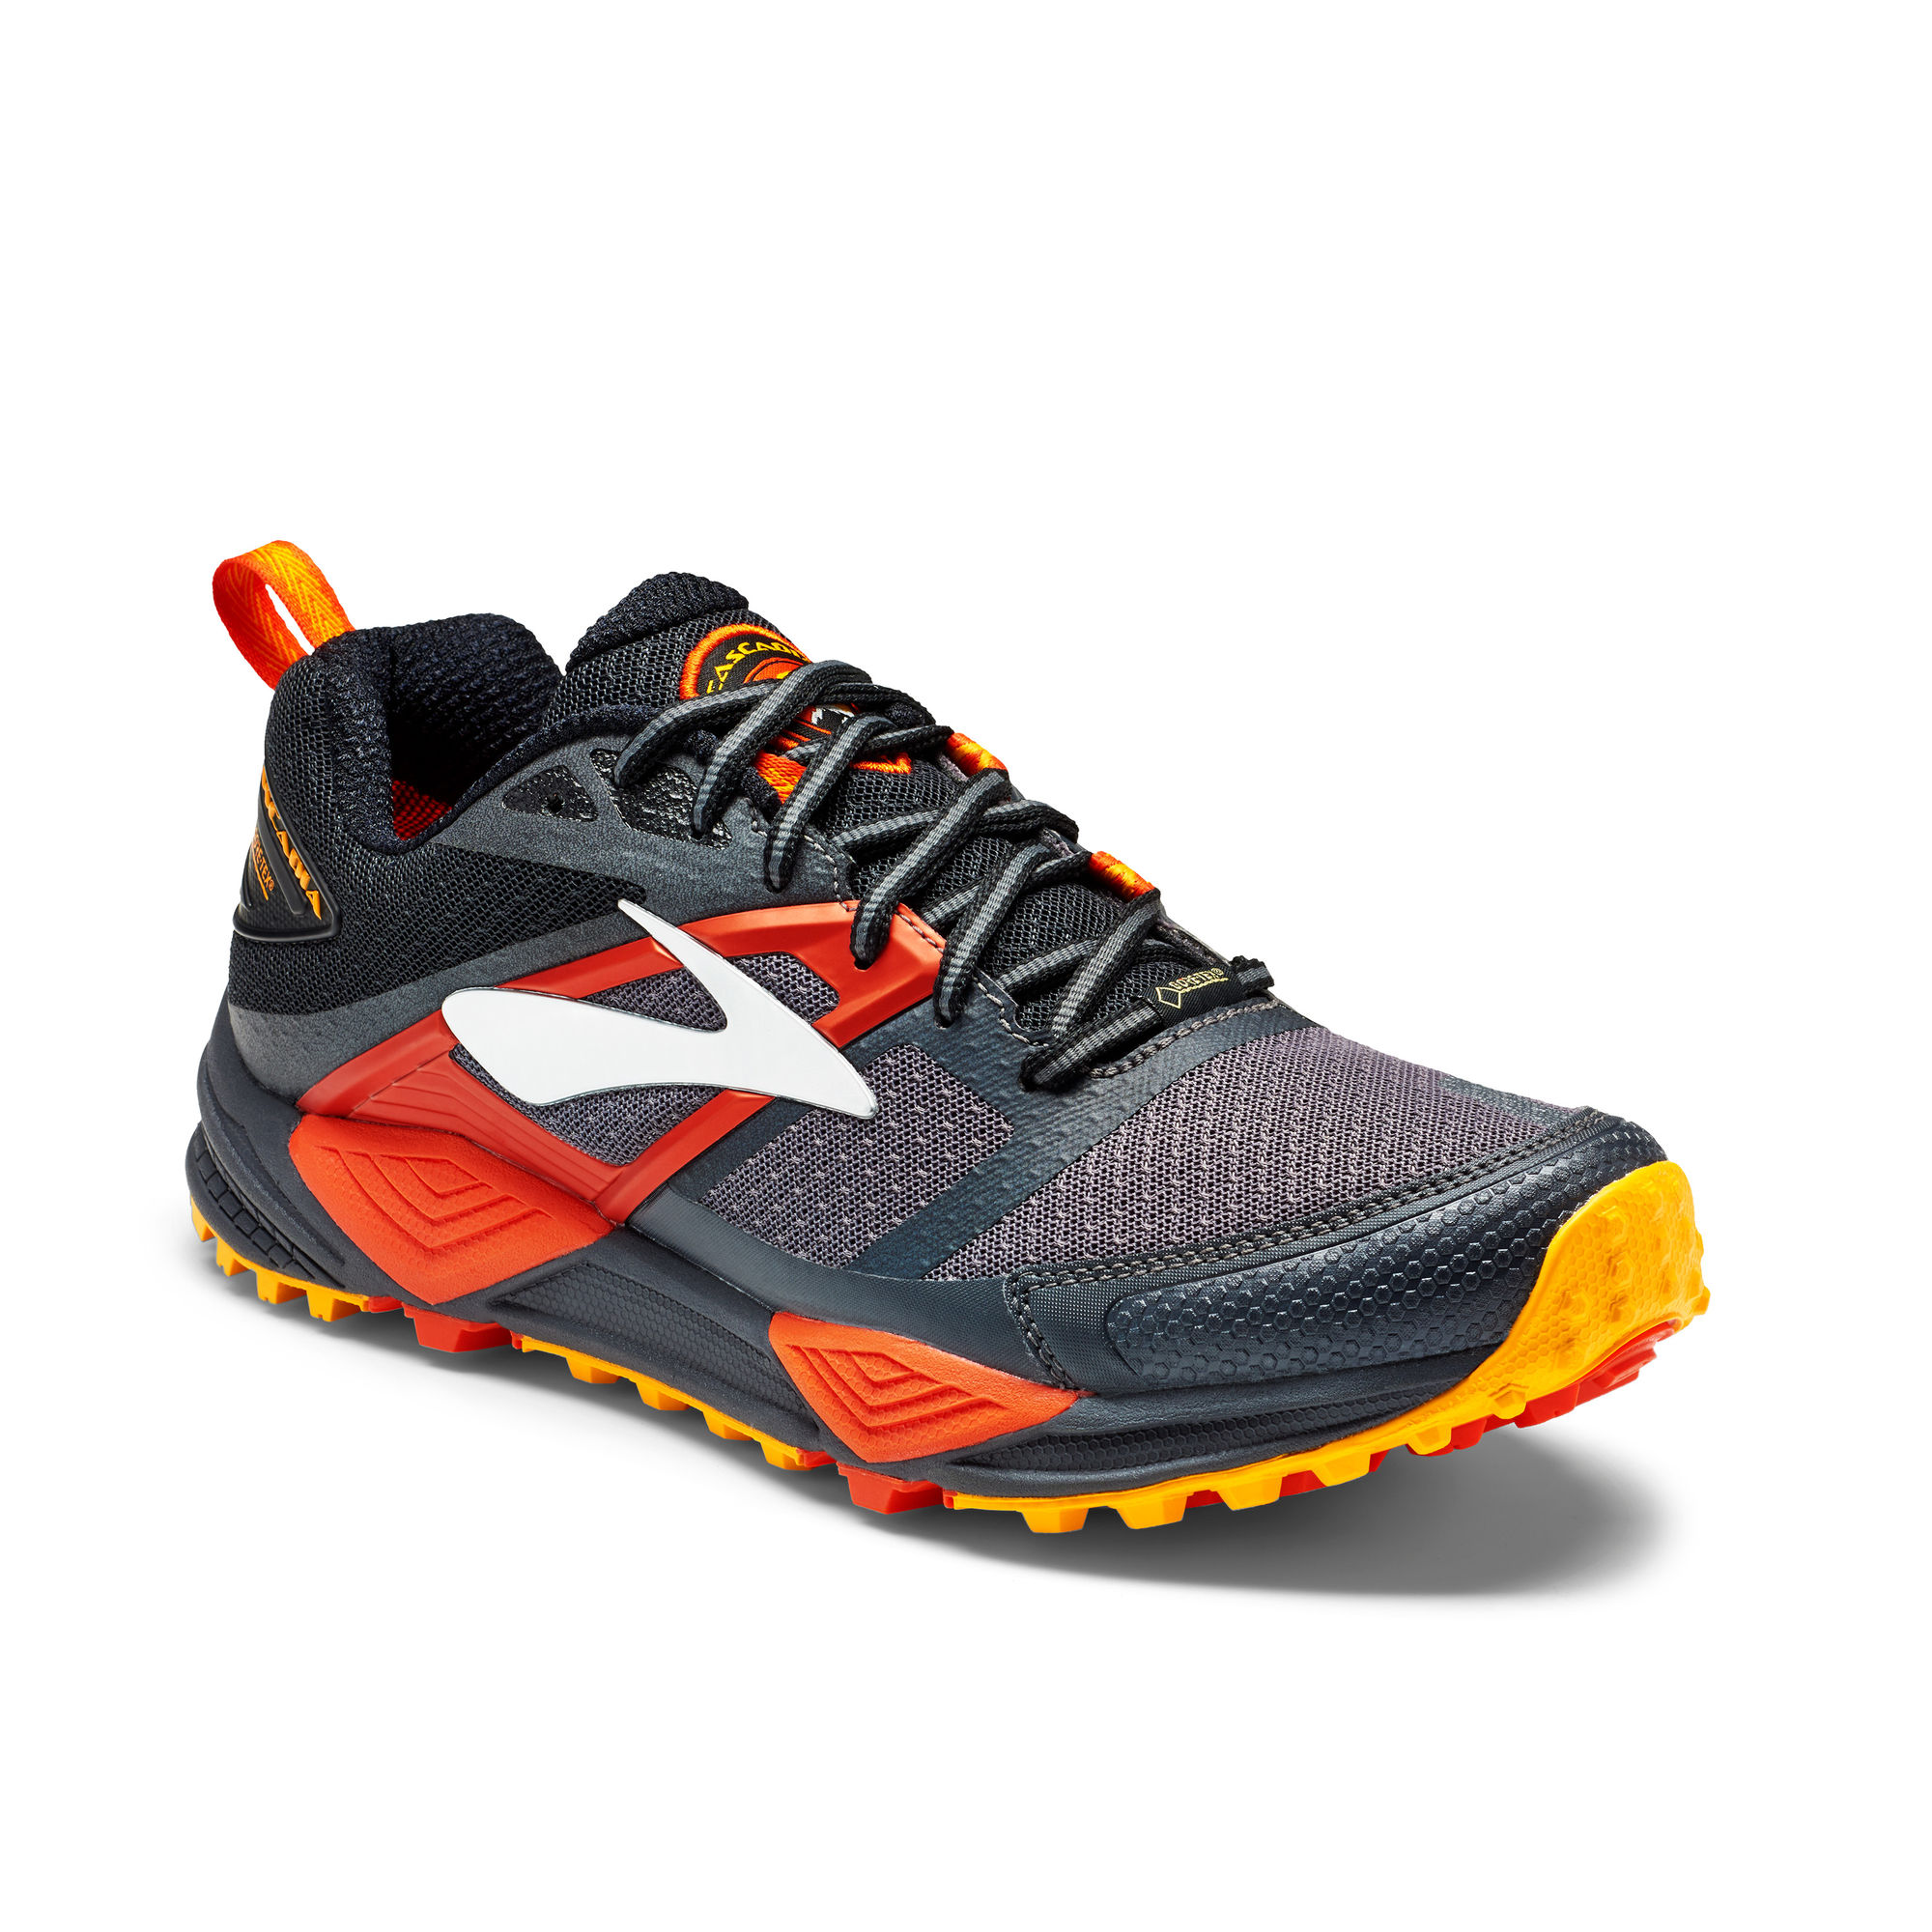 Brooks Cascadia 12 GTX in Schwarz Orange